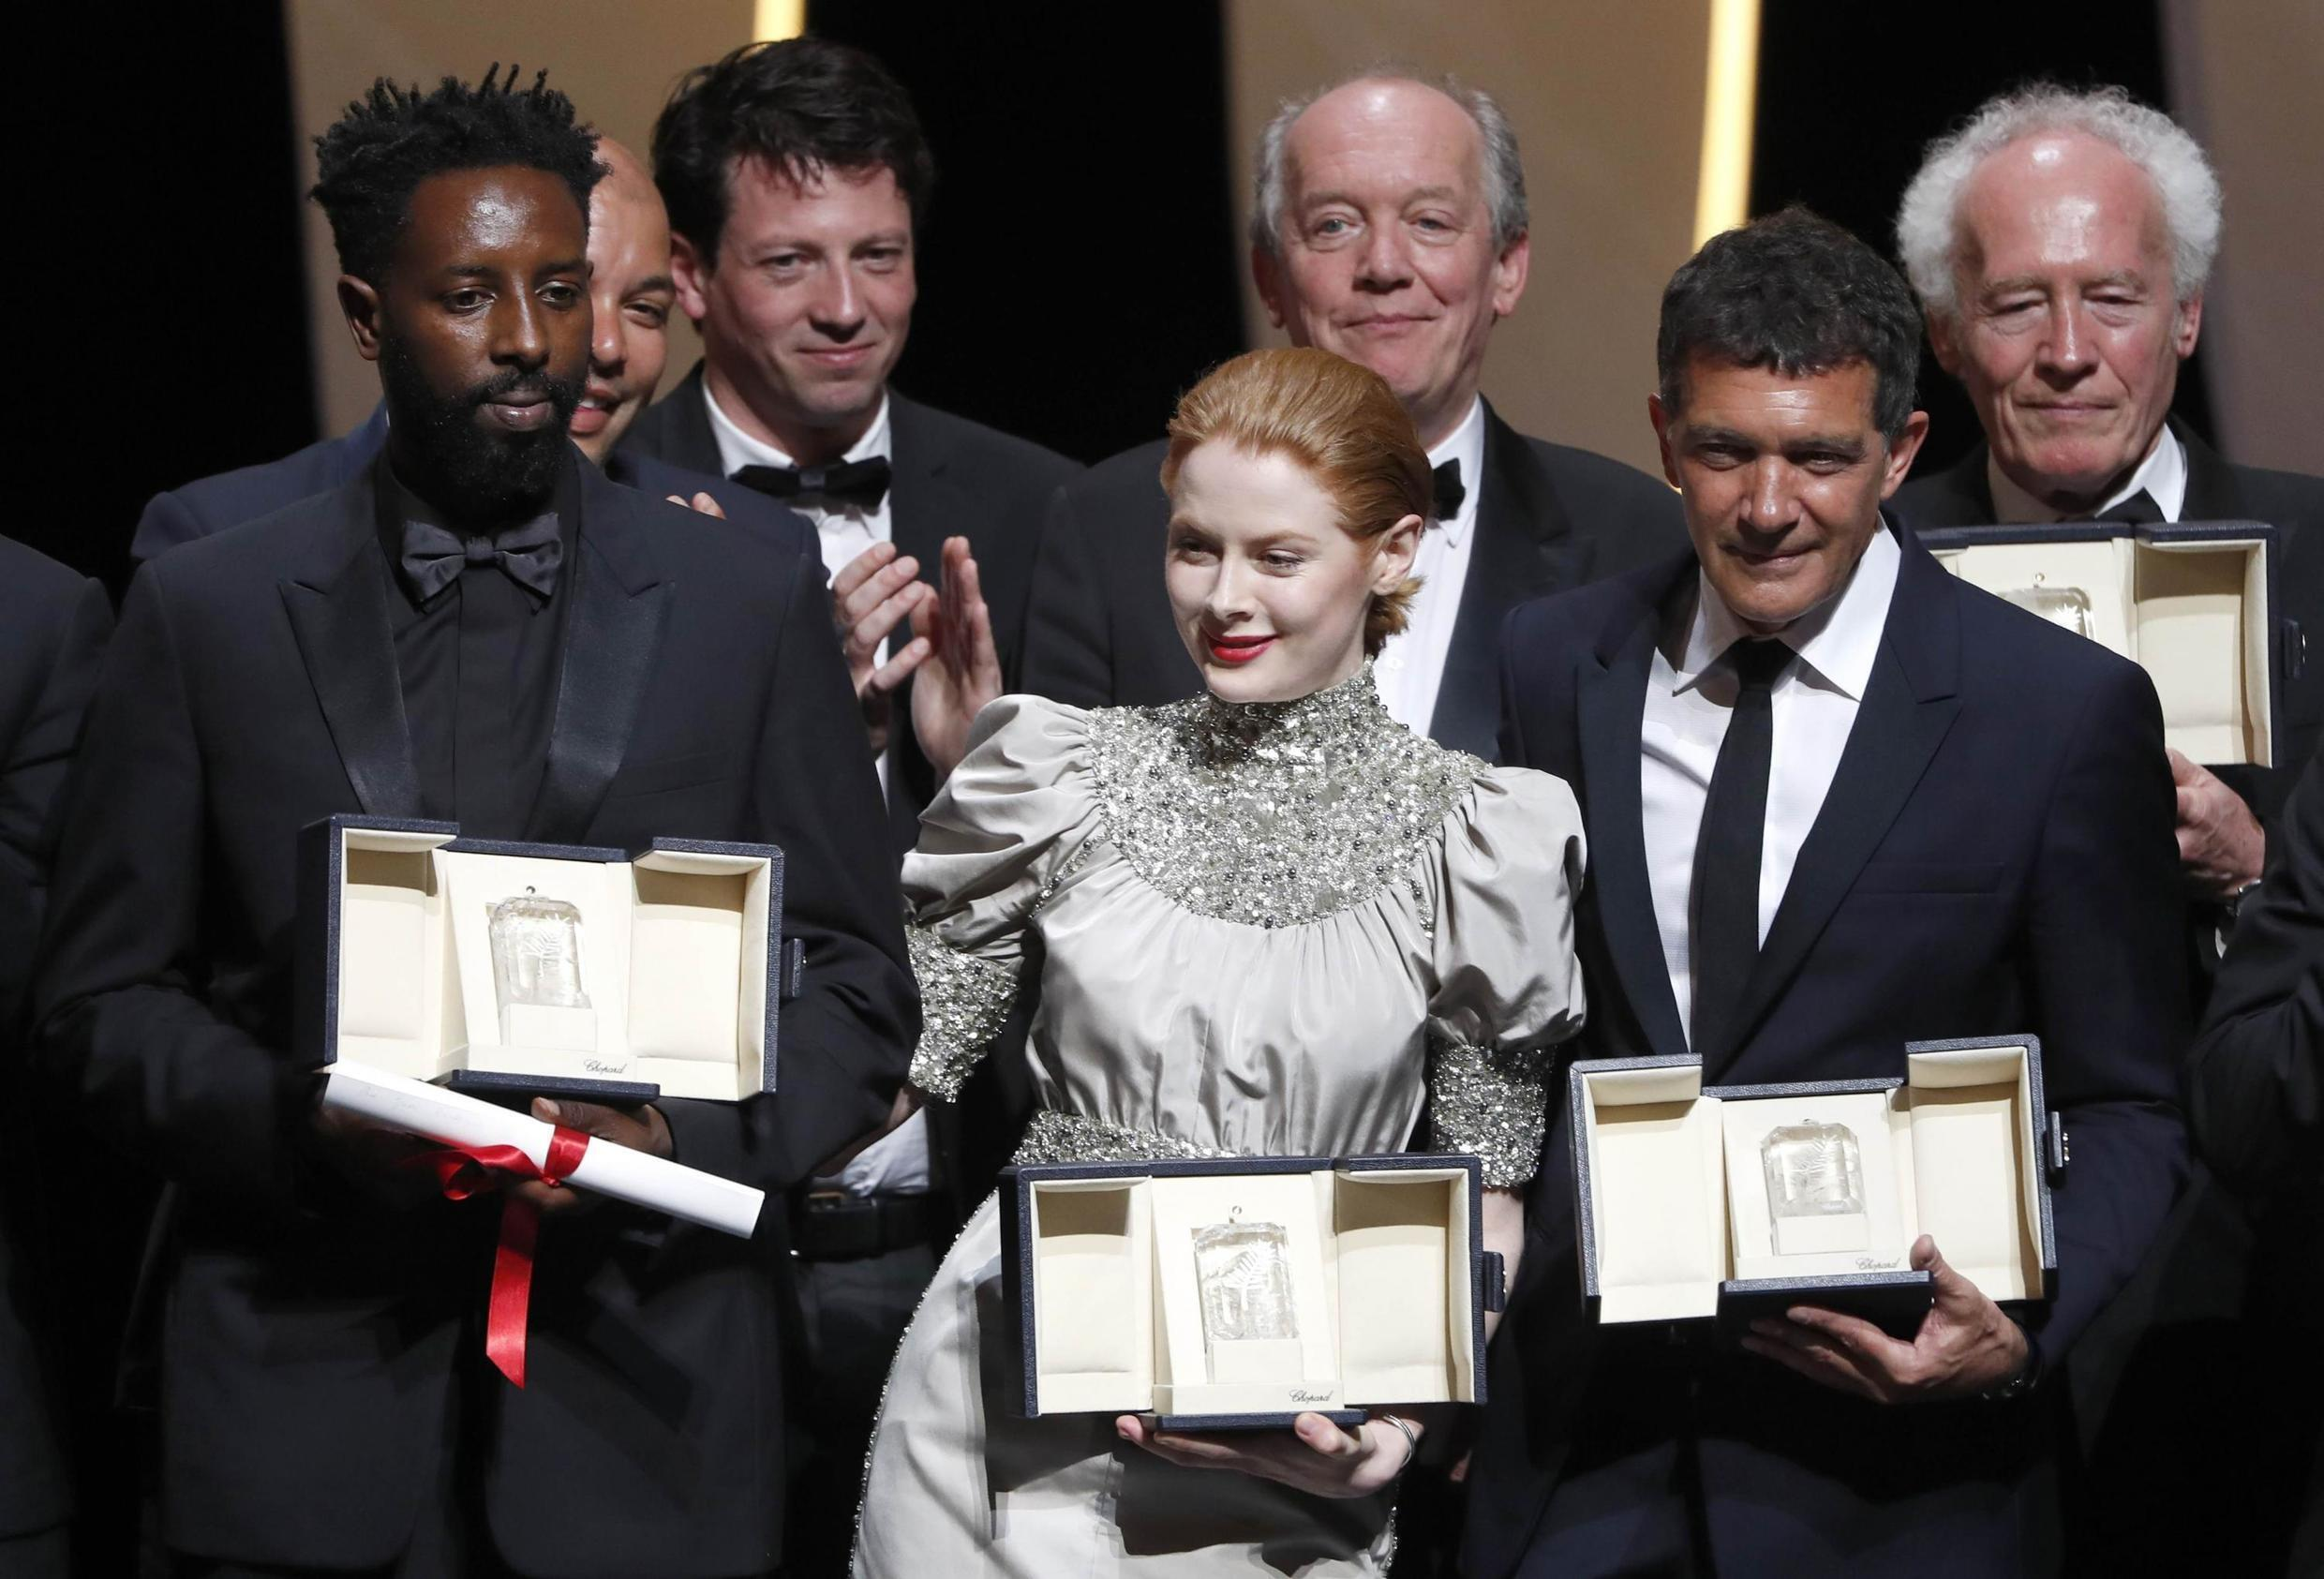 Ladj Ly, Emily Beecham, Luc Dardenne, Antonio Banderas, Jean-Pierre Dardennes, winners at the 72nd Cannes Film Festival, 25 May 2019